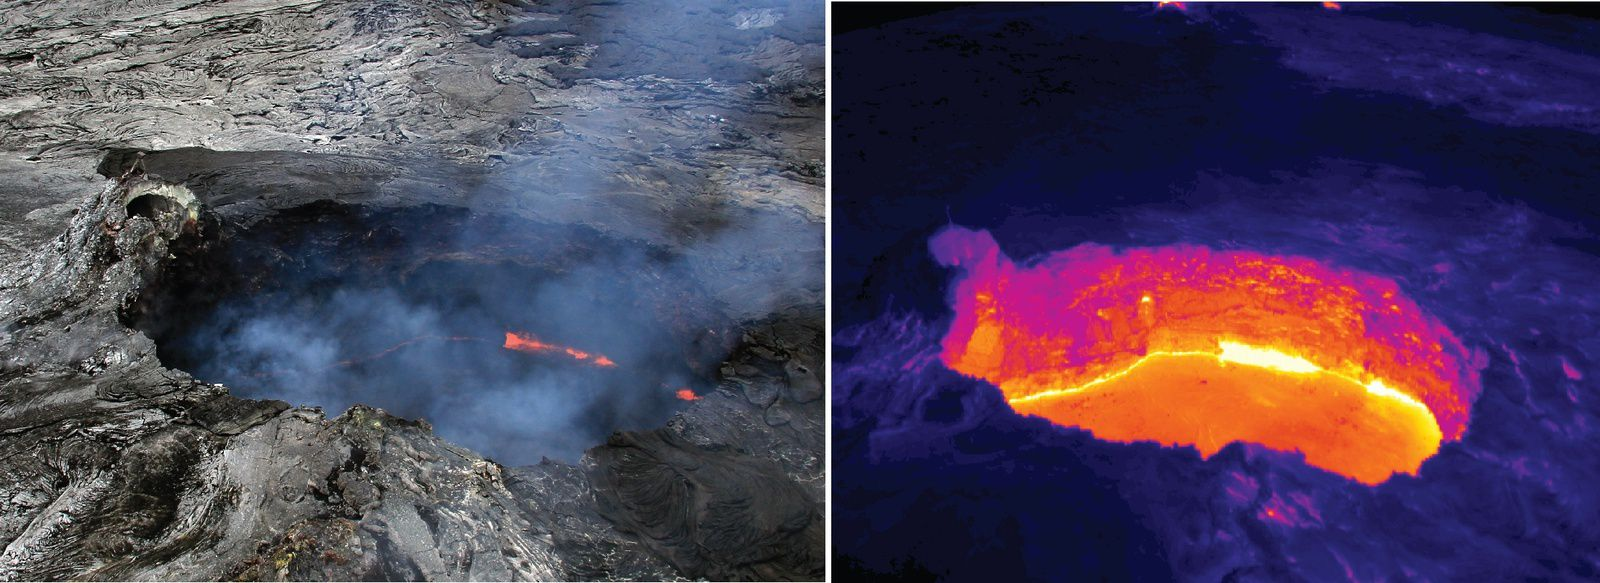 Pu'u O'o / 06.27.2014 - withdrawal of magma and lower level of the lava in the crater; the crater widened subsequent to the partial collapse cones - photos HVO